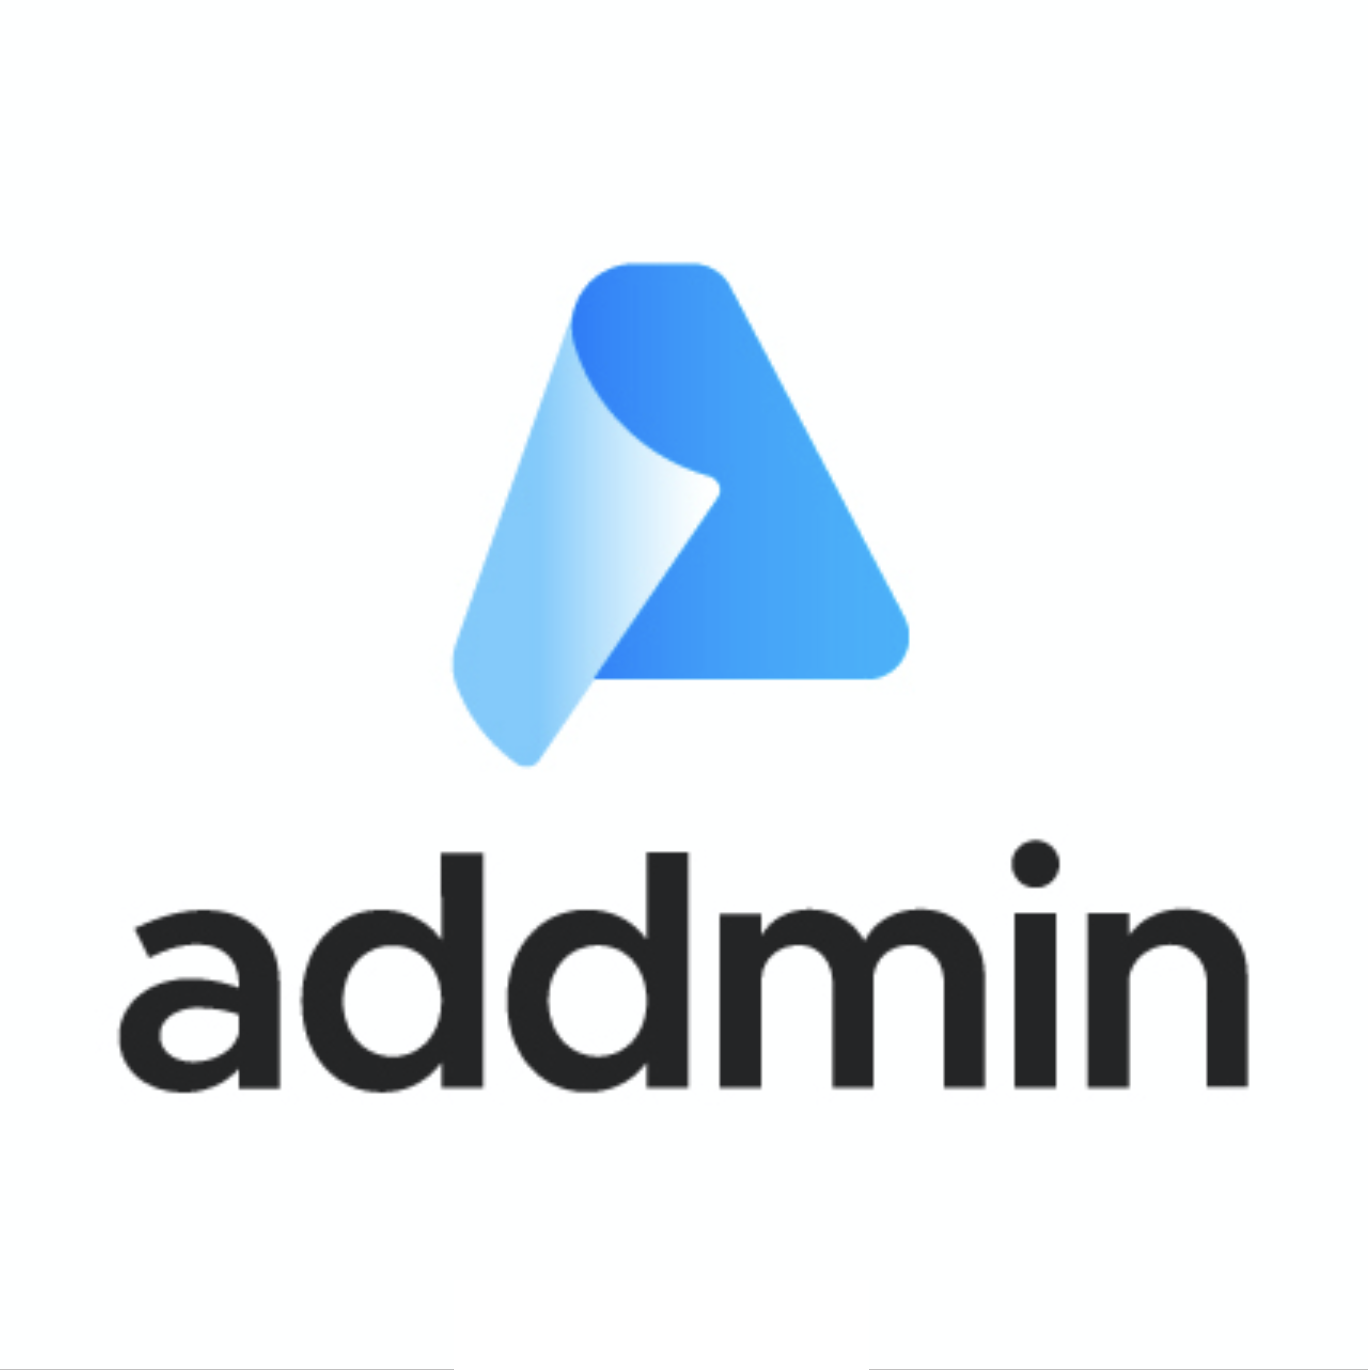 Addmin - mobile app for your personal paperwork